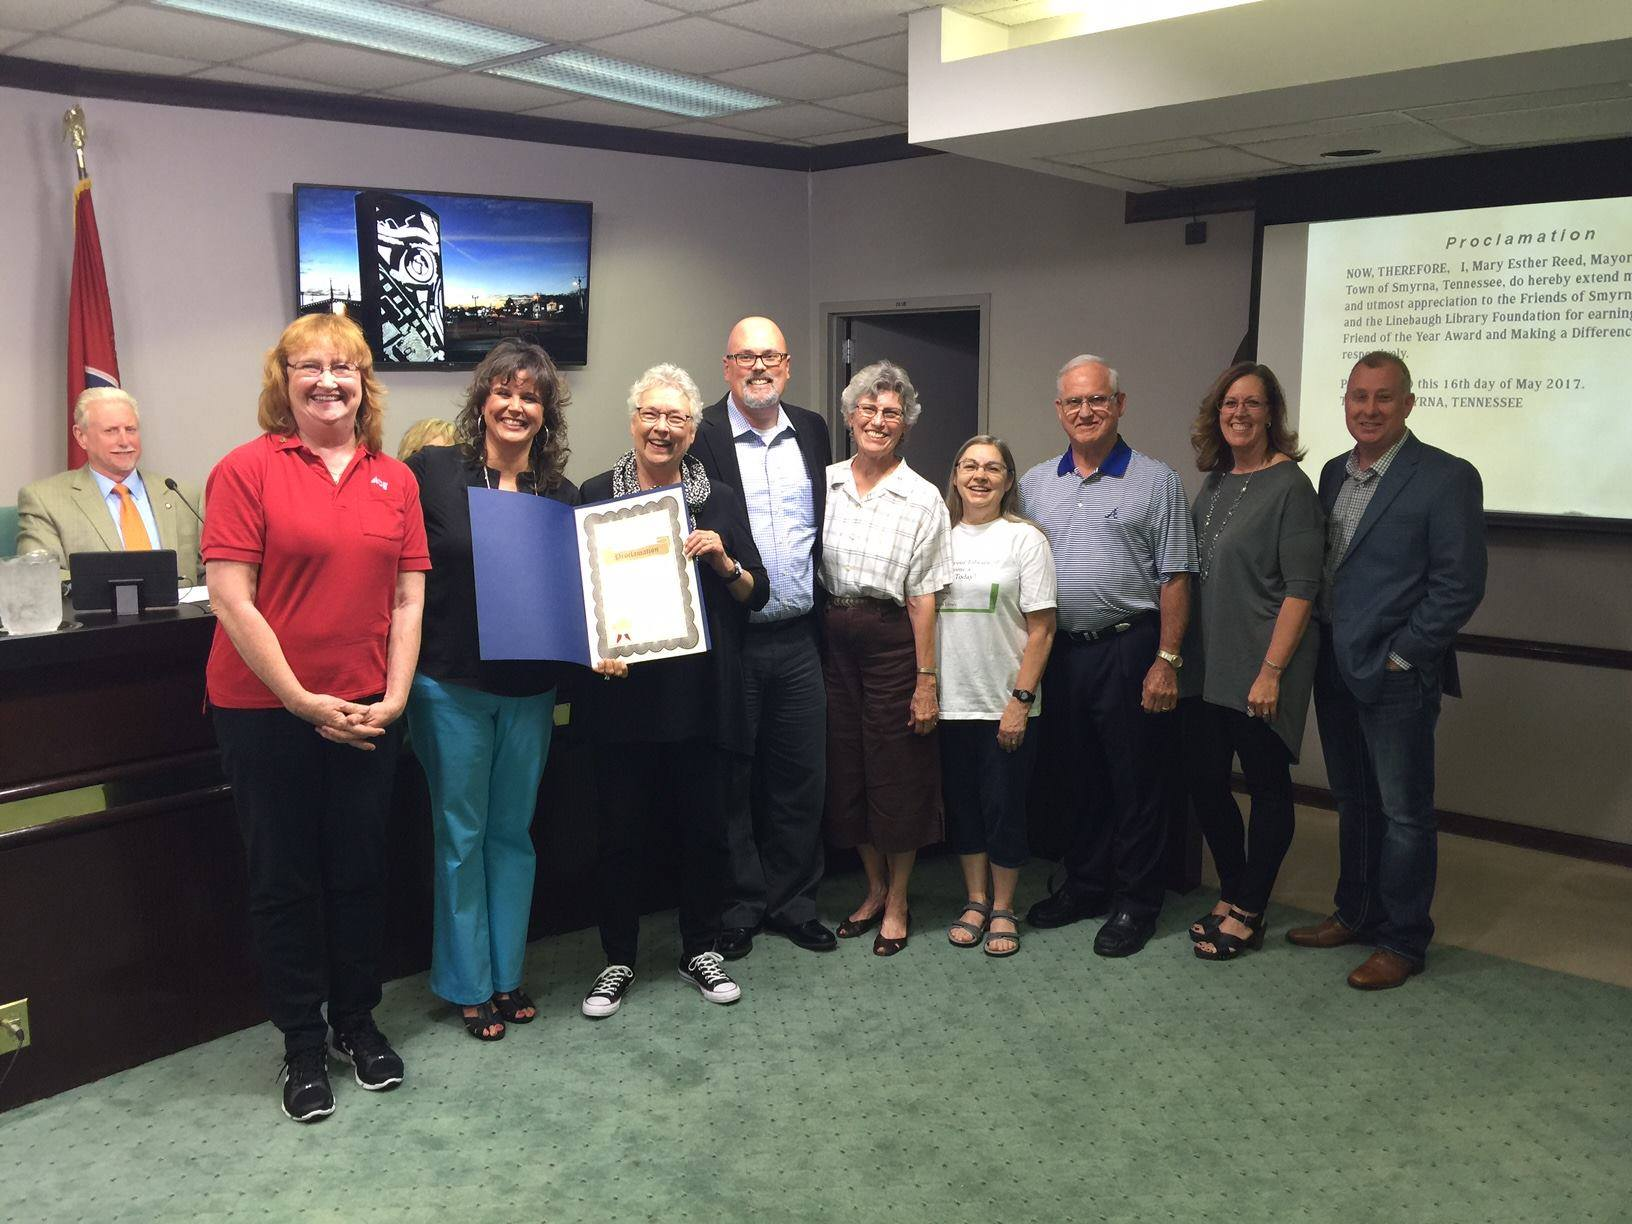 Special Recognition by Town of Smyrna